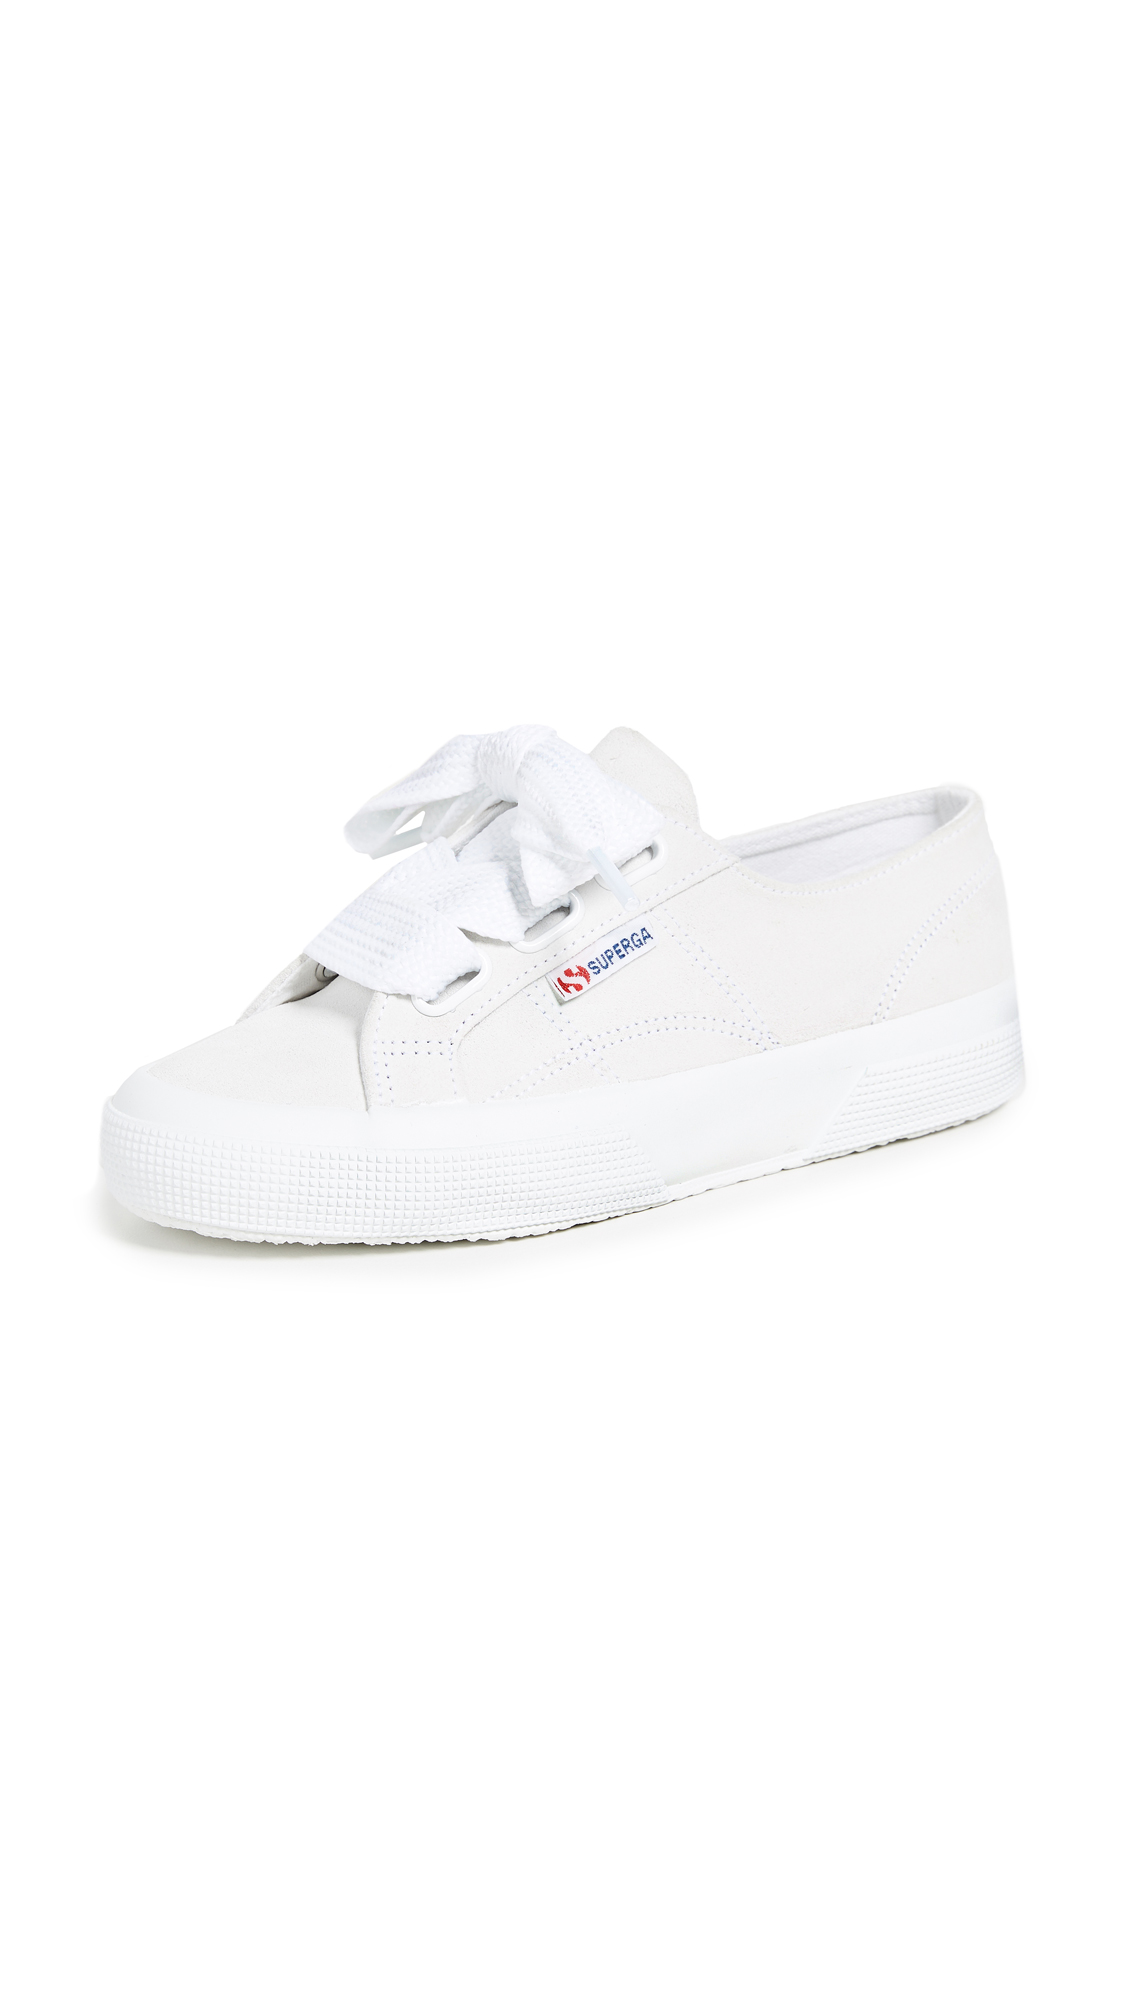 Superga 2750 Chunky Lace Sneakers - White